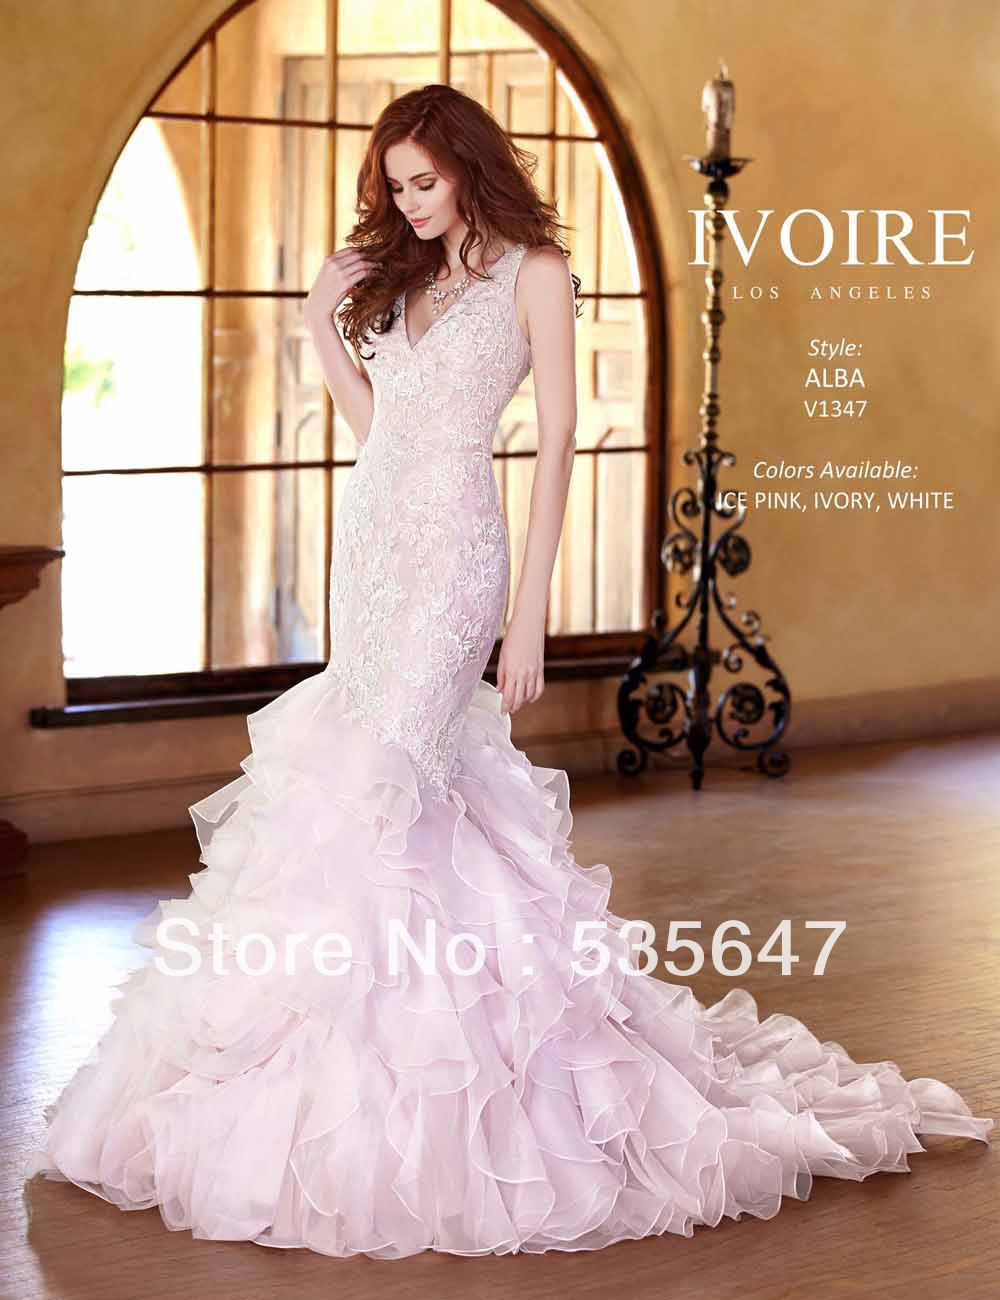 2014 Mermaid Wedding Dresses Color Accented V Neck Straps Backless Organza Raffles Court Train Pink Trumpet Bridal Gowns V1347 In From